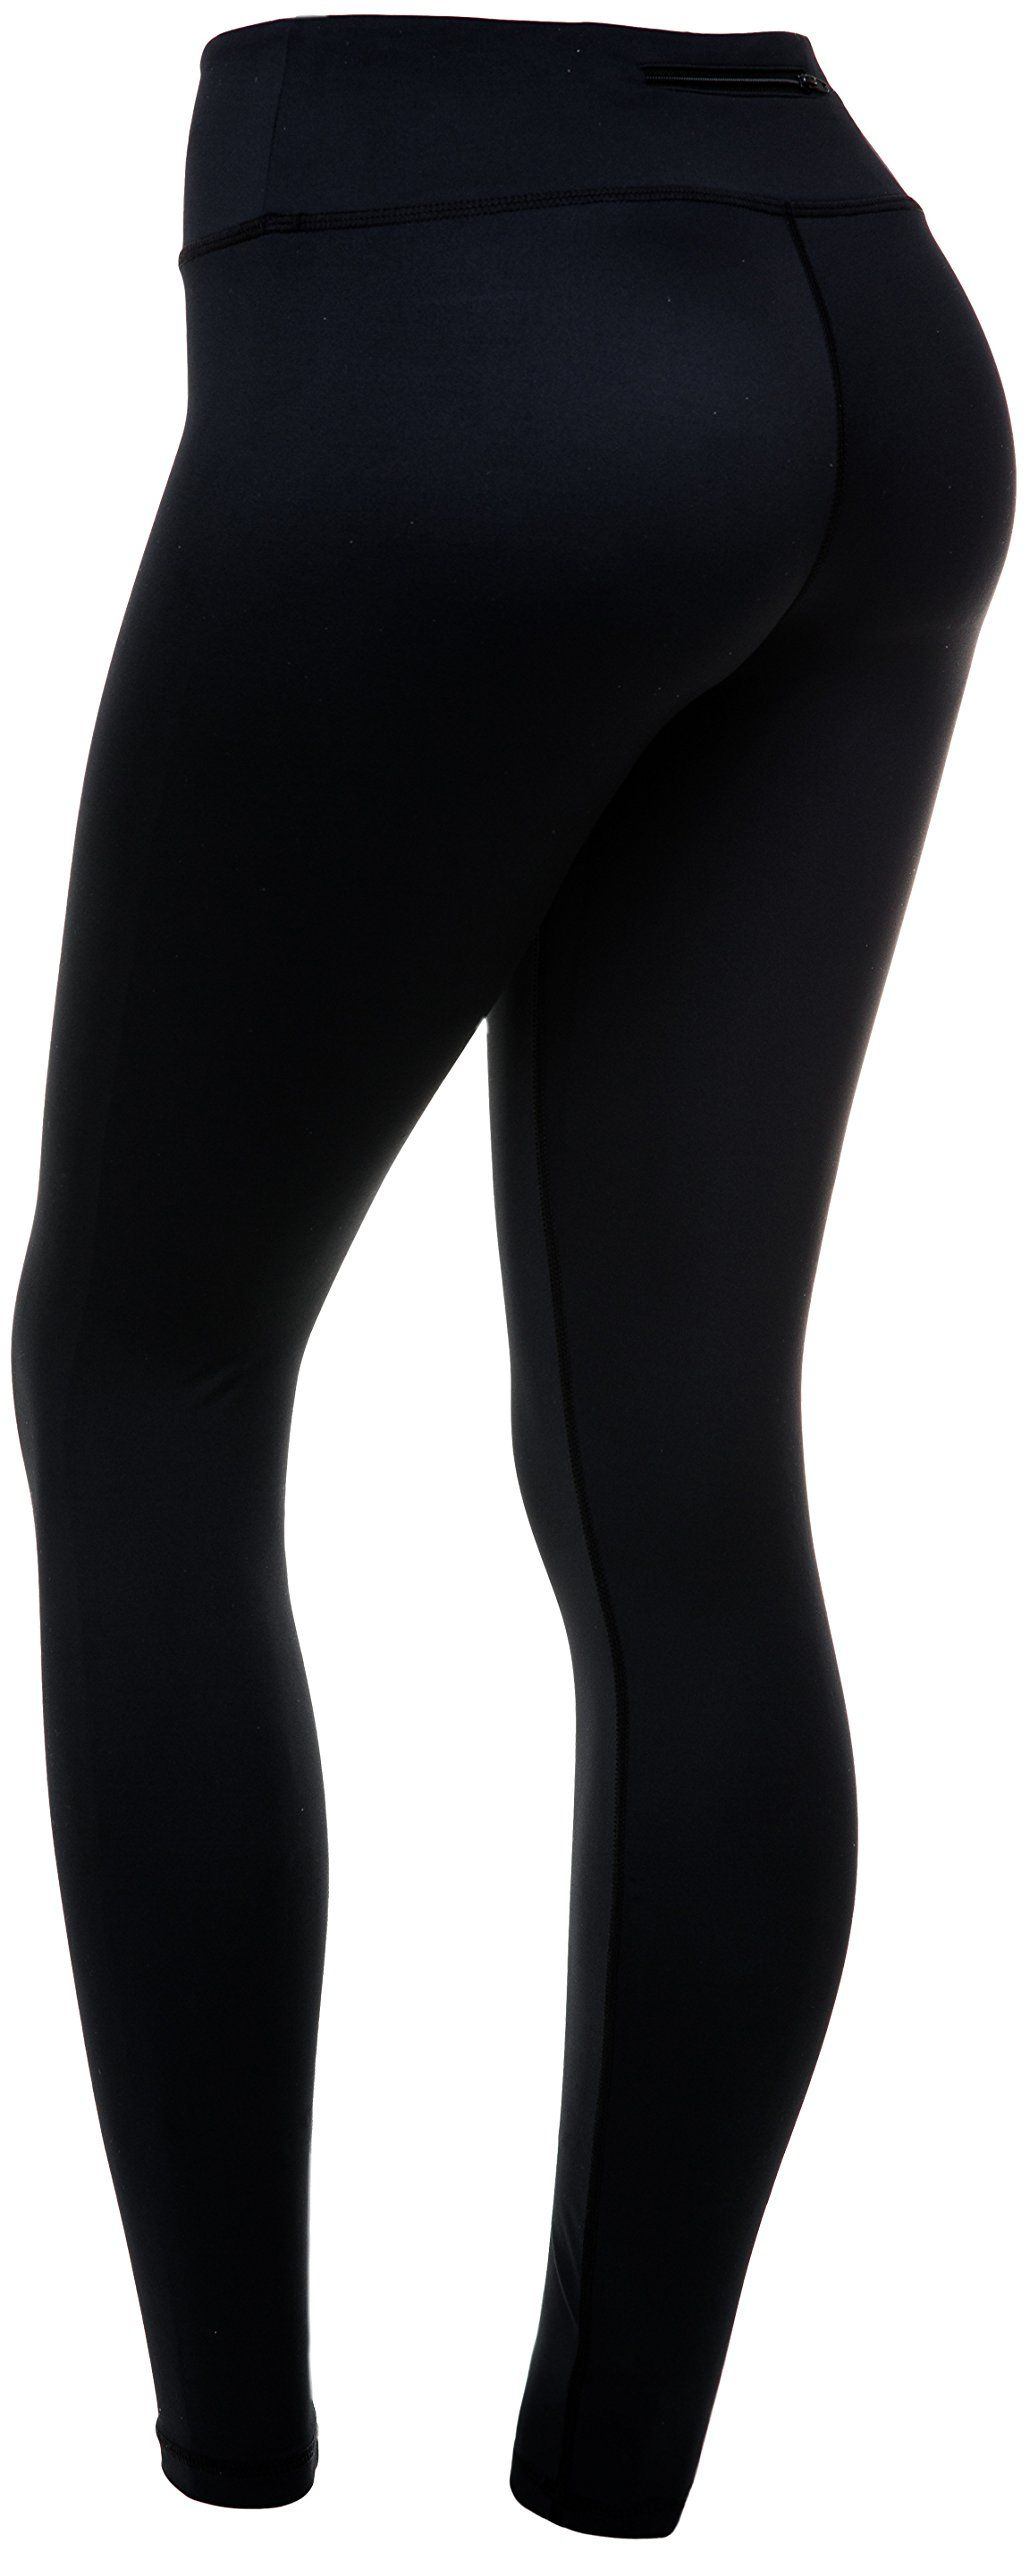 3cb5c92b7f60d4 CompressionZ Womens Compression Pants Black XL Best Full Leggings Tights  for Running Yoga Gym -- Click image to review more details.